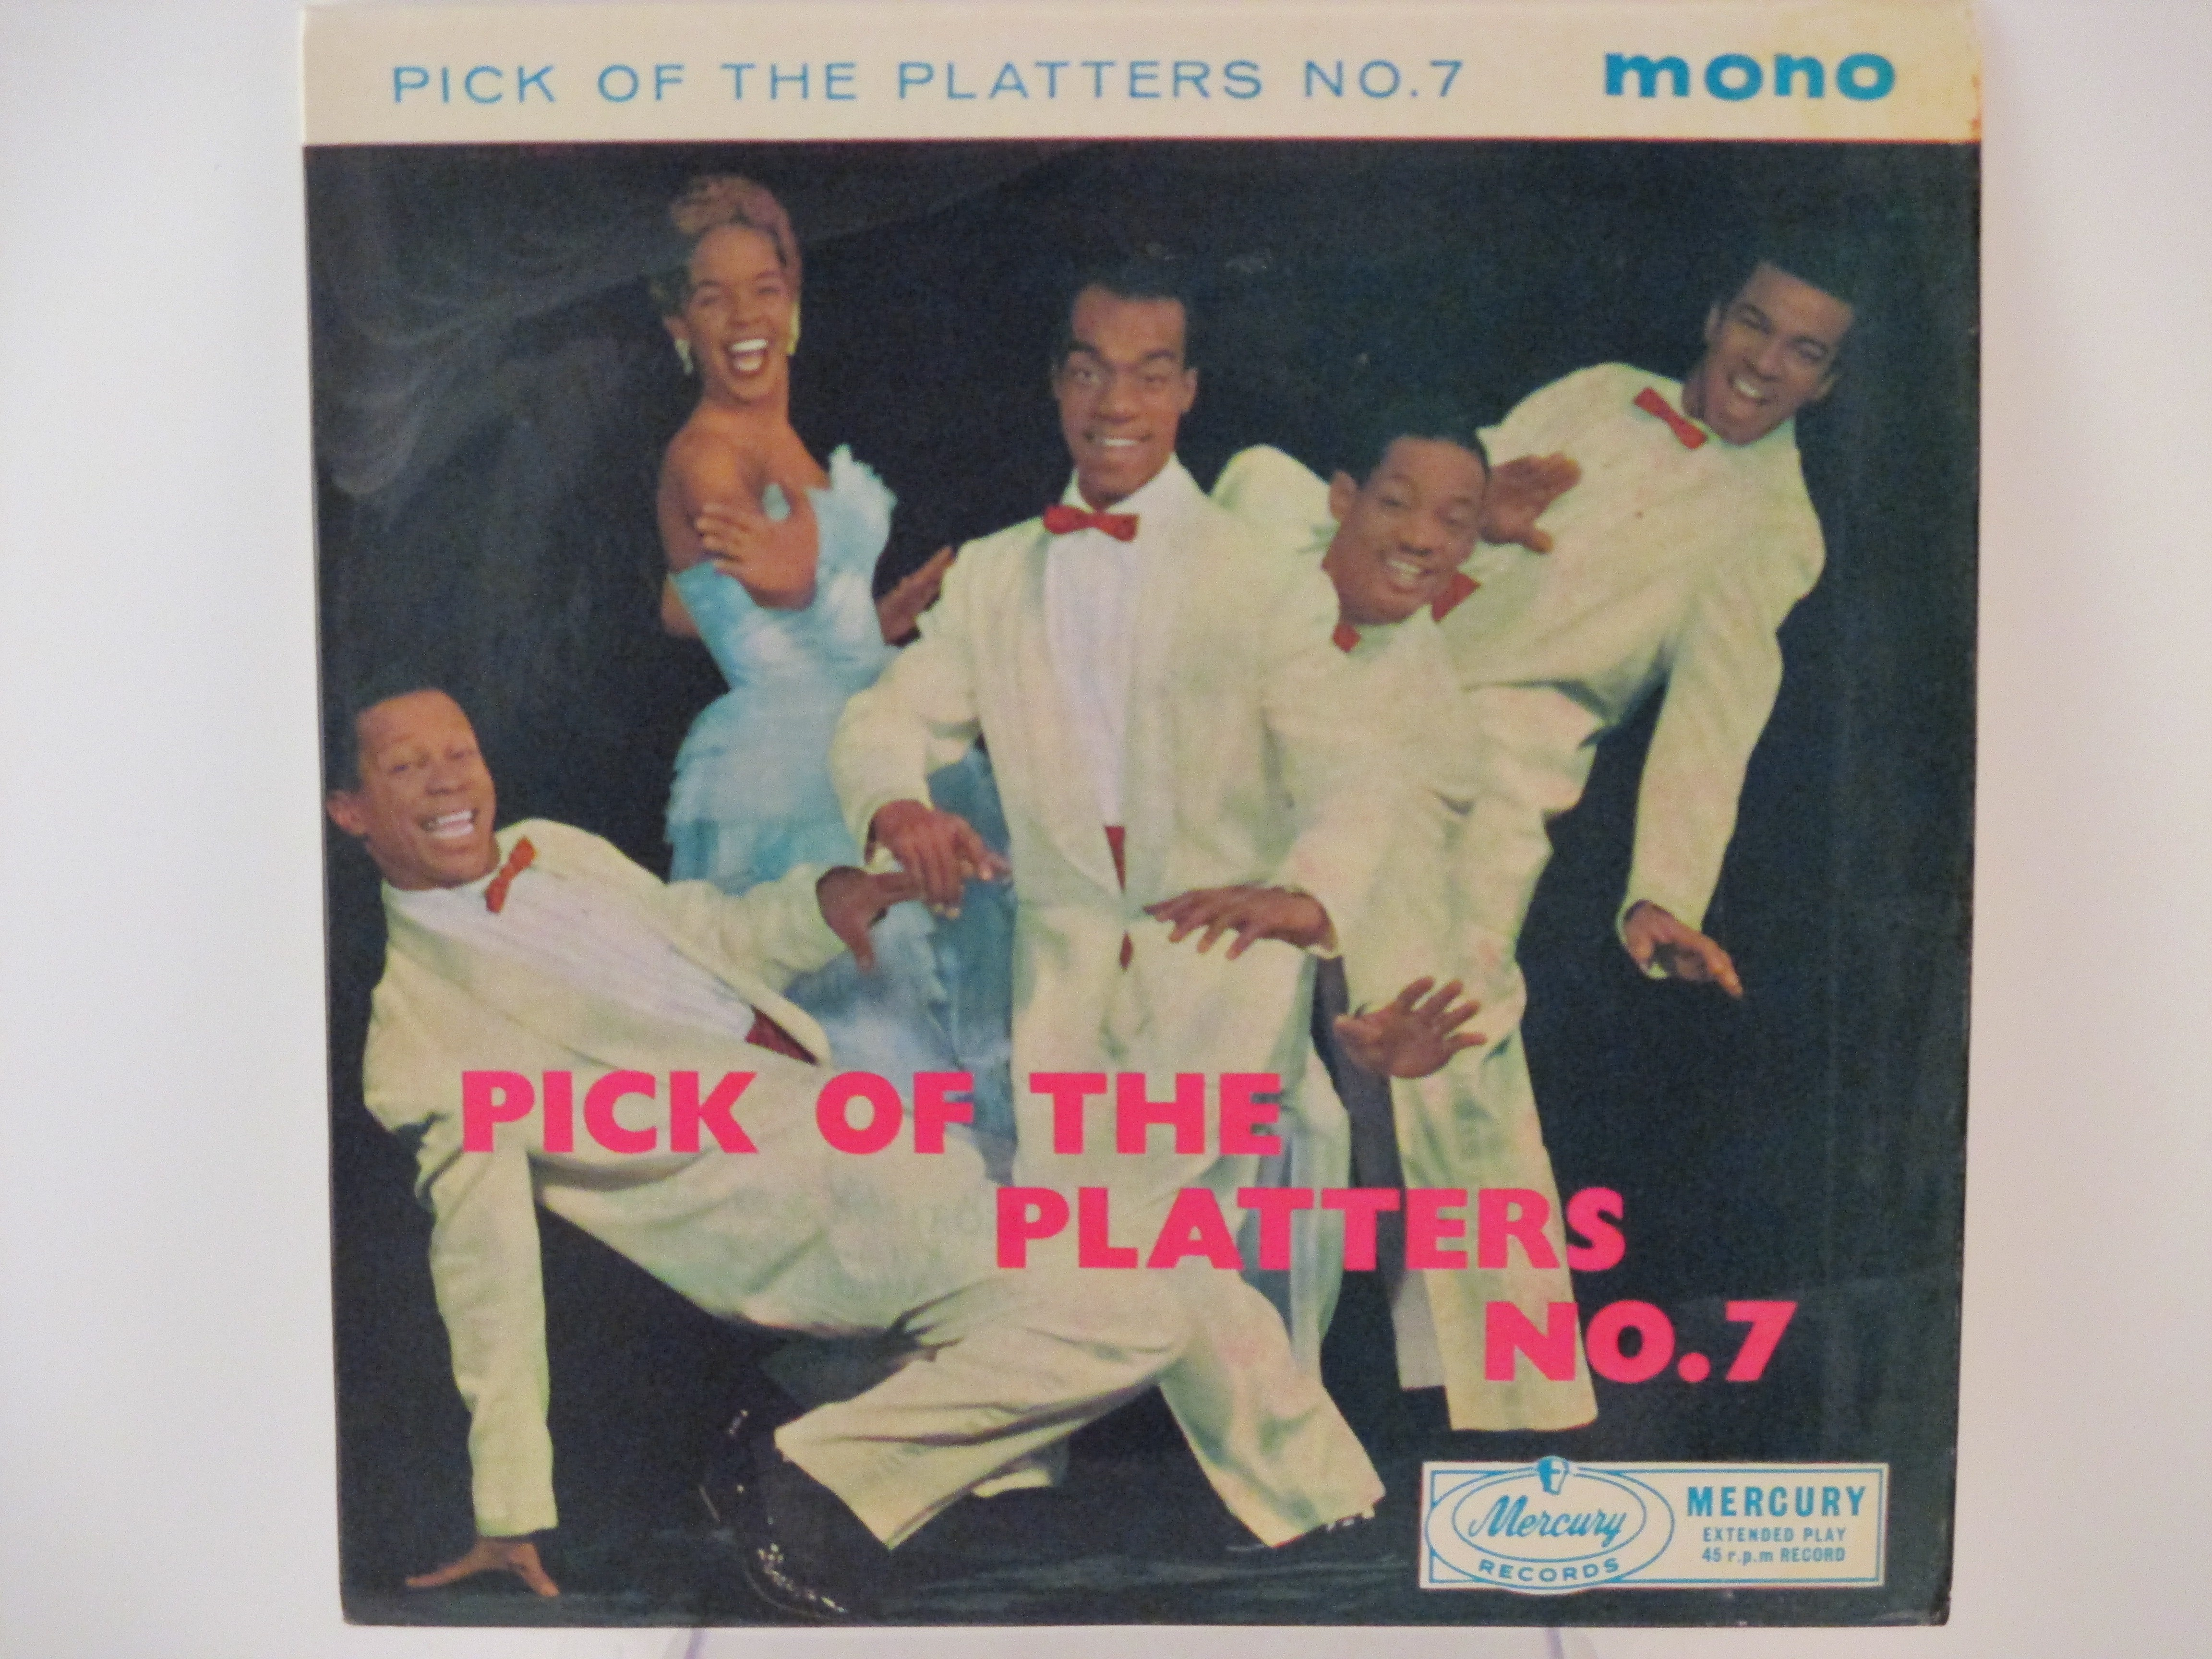 PLATTERS : (EP) Only you / The great pretender / My prayer / The magic touch